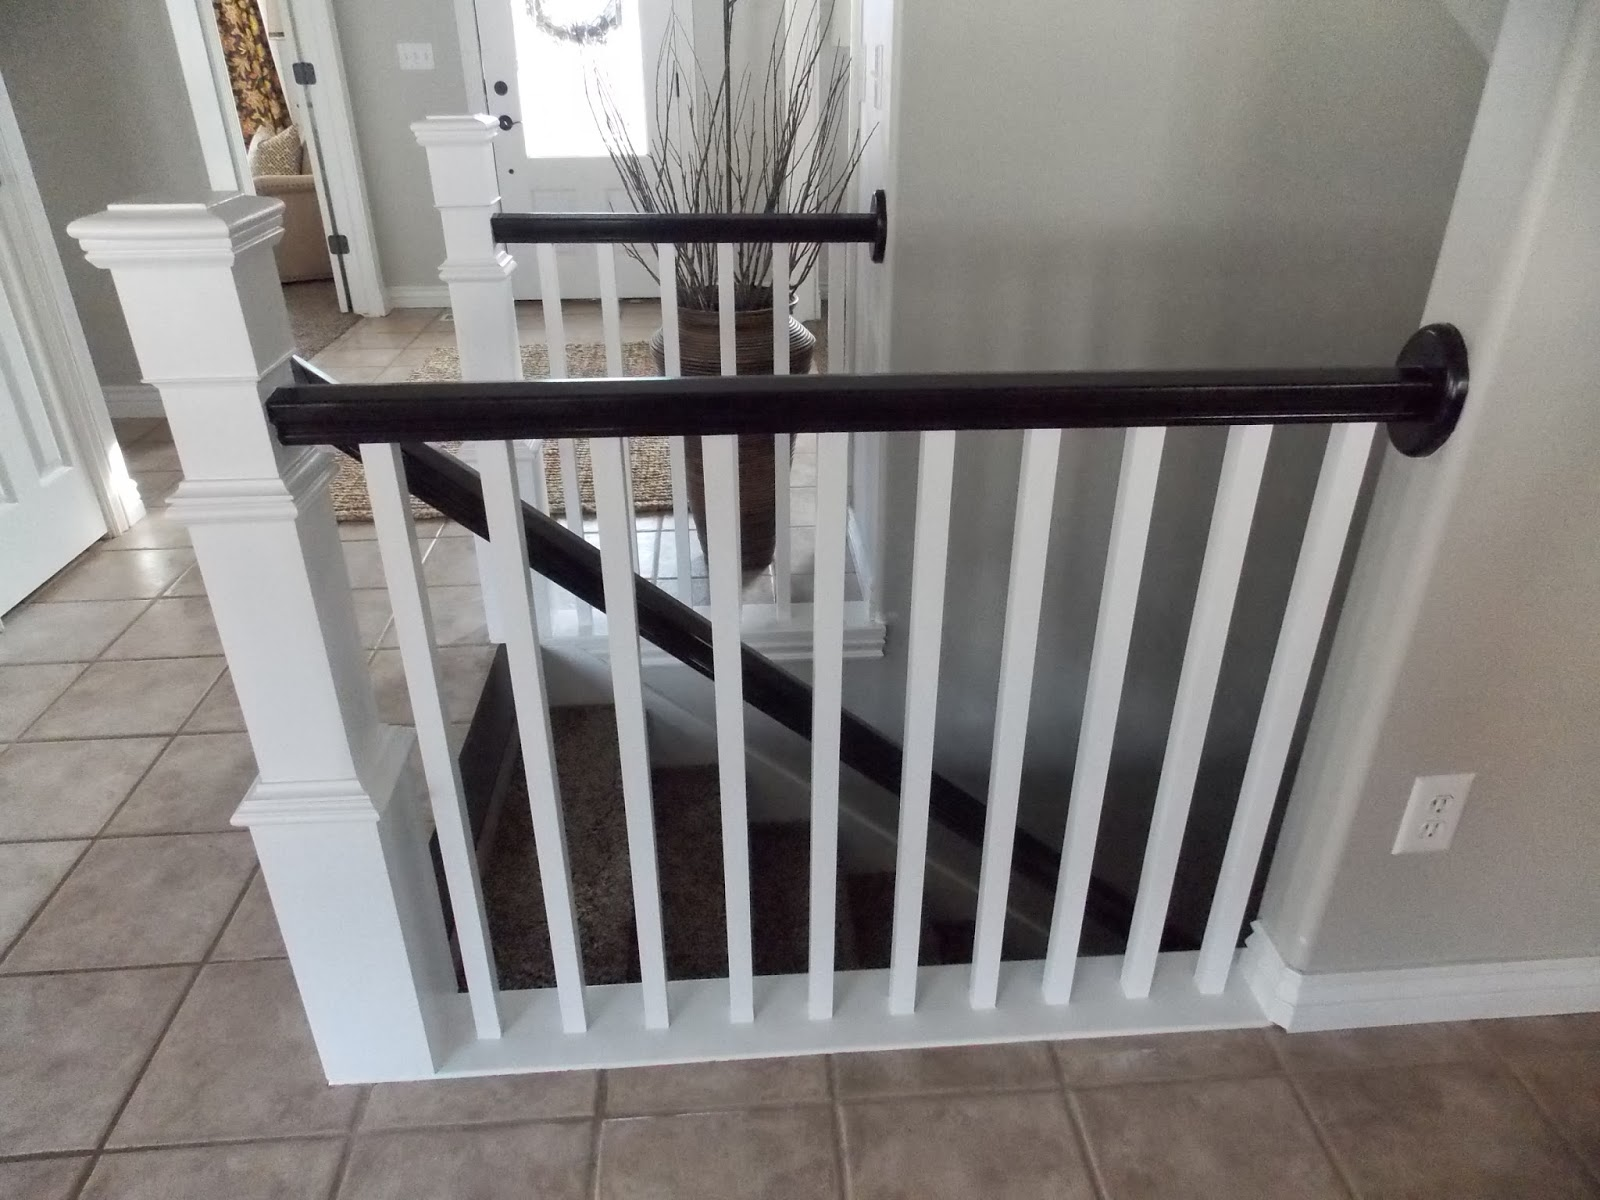 Stair Banister Redo With New Newel Post And Spindles Tda Decorating And Design Featured On